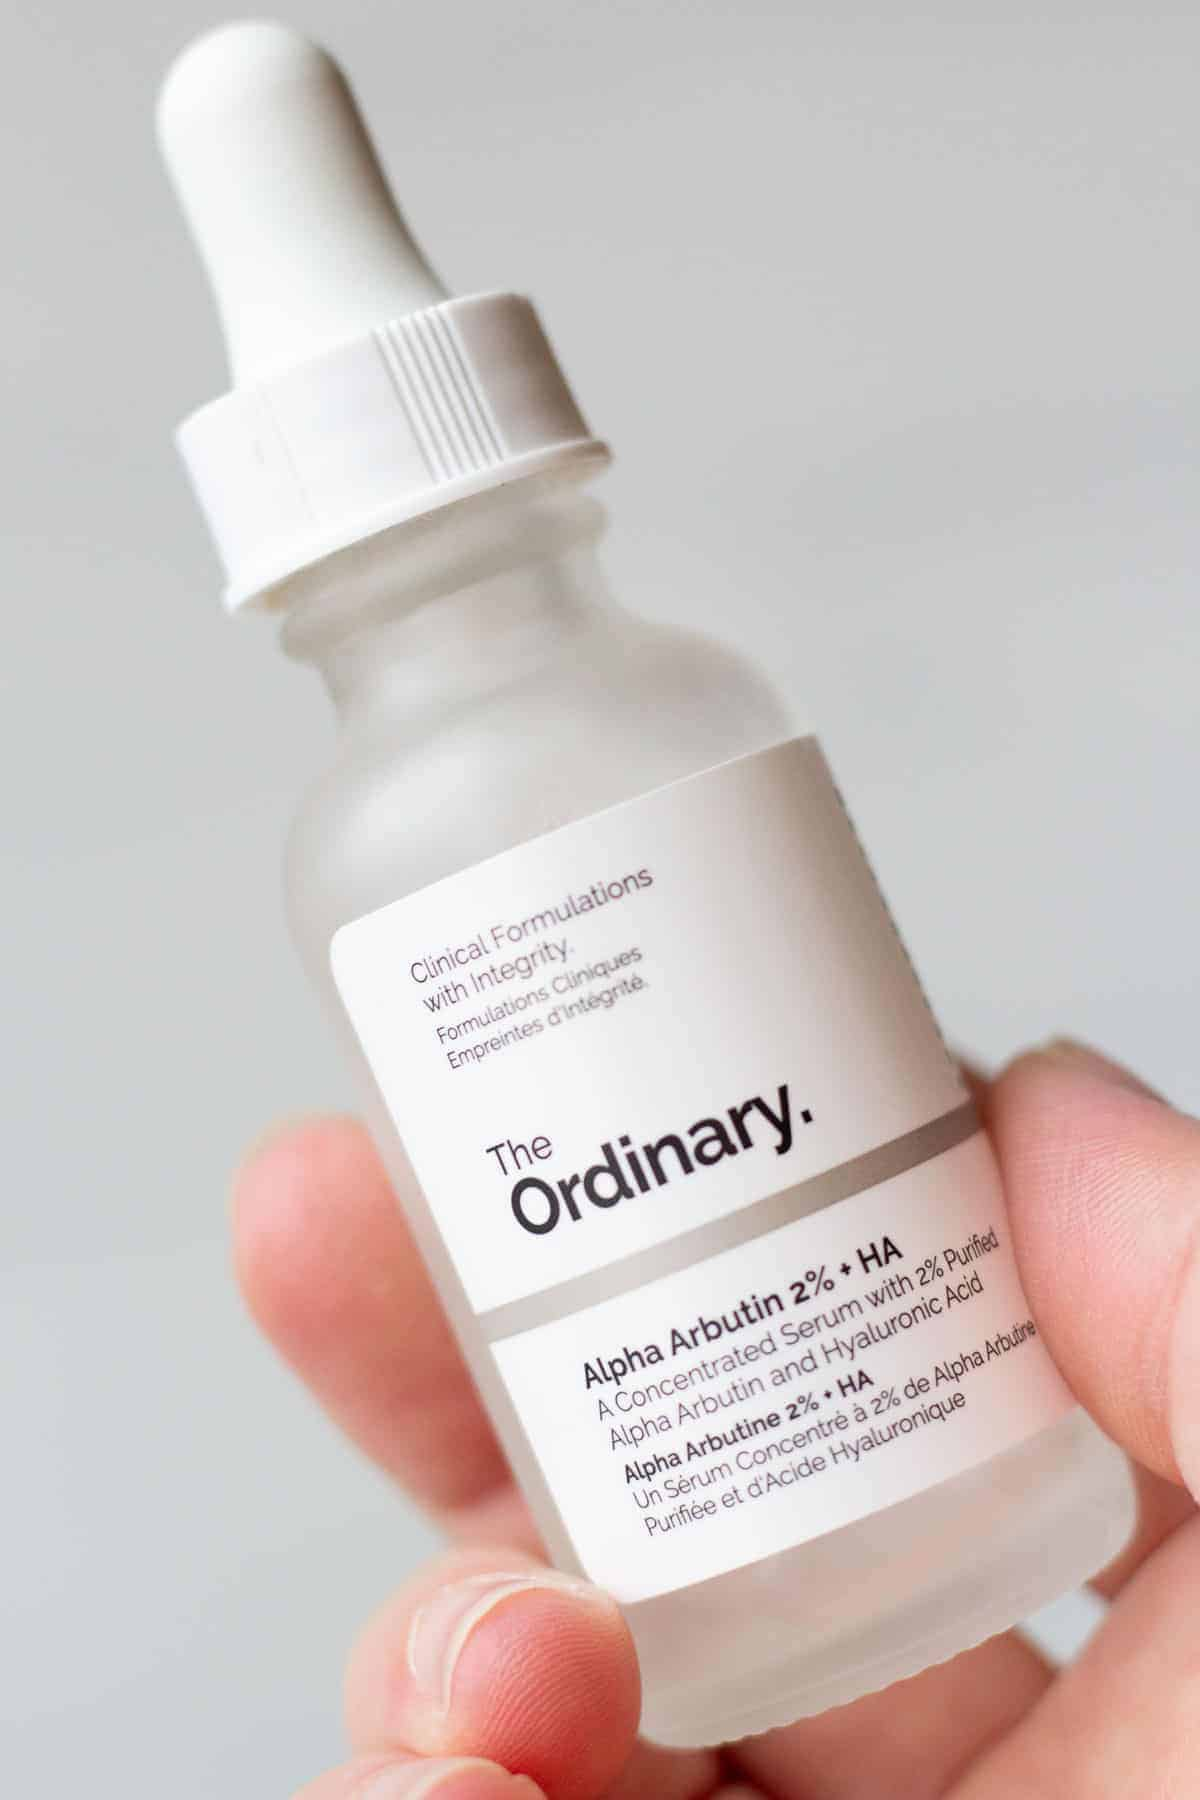 A hand holding a bottle of The Ordinary Alpha Arbutin